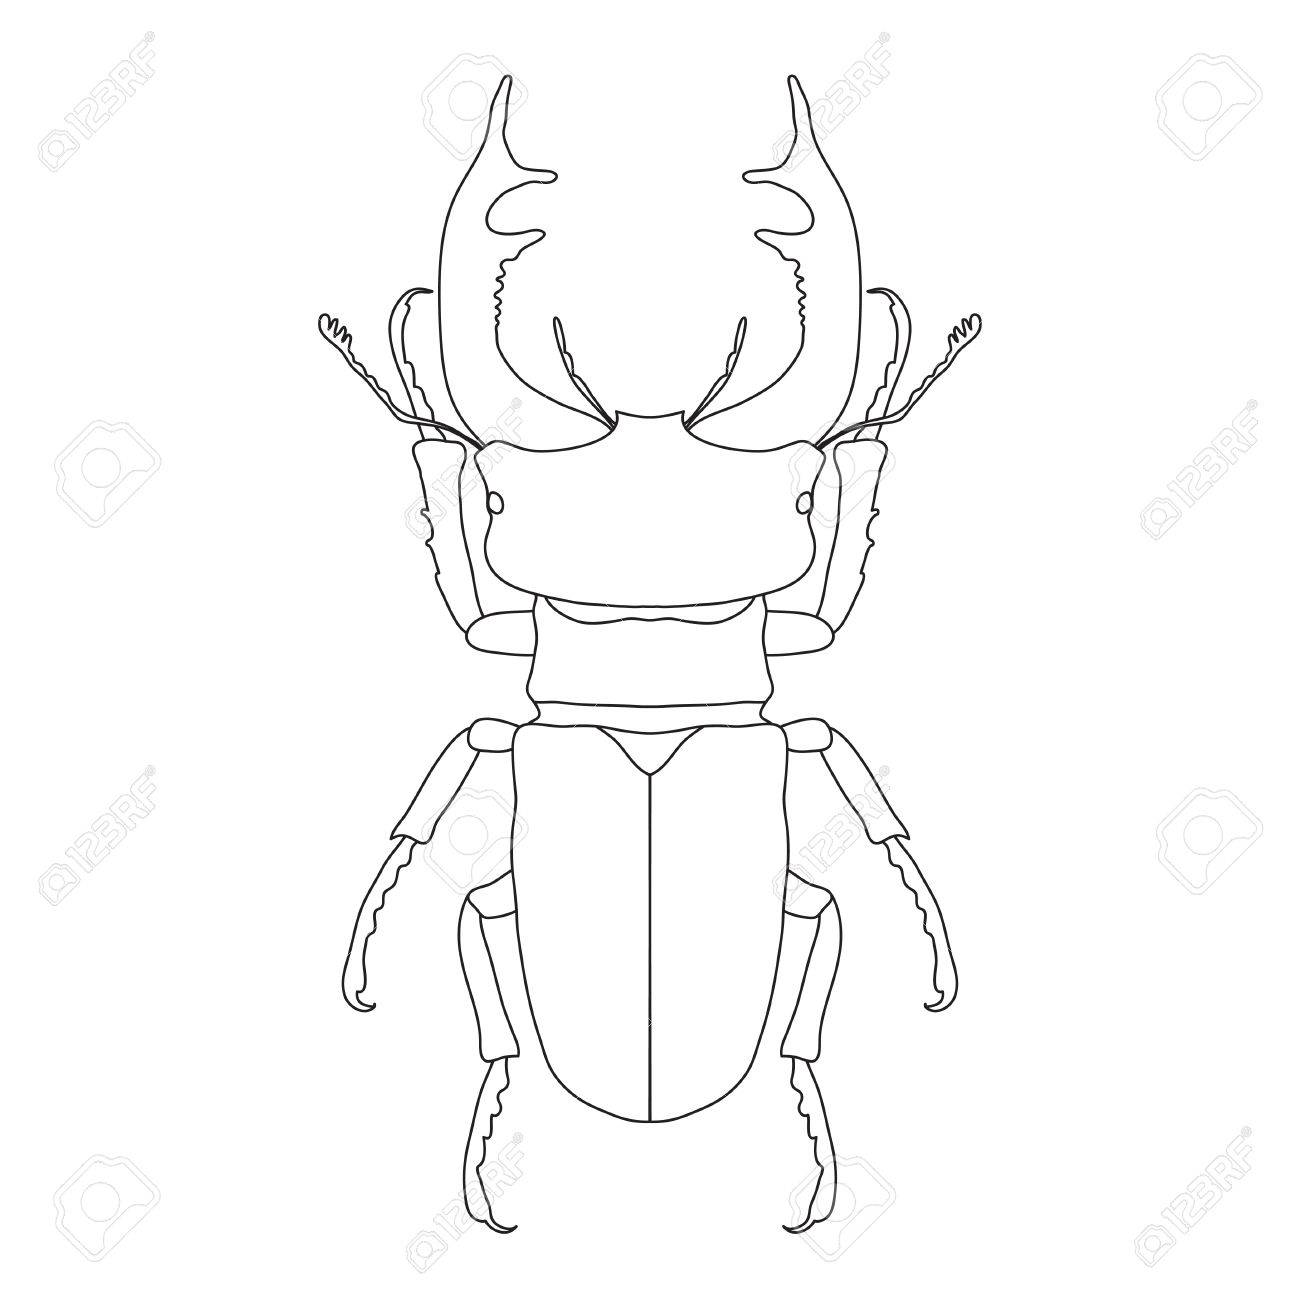 The Best Free Beetle Drawing Images Download From 602